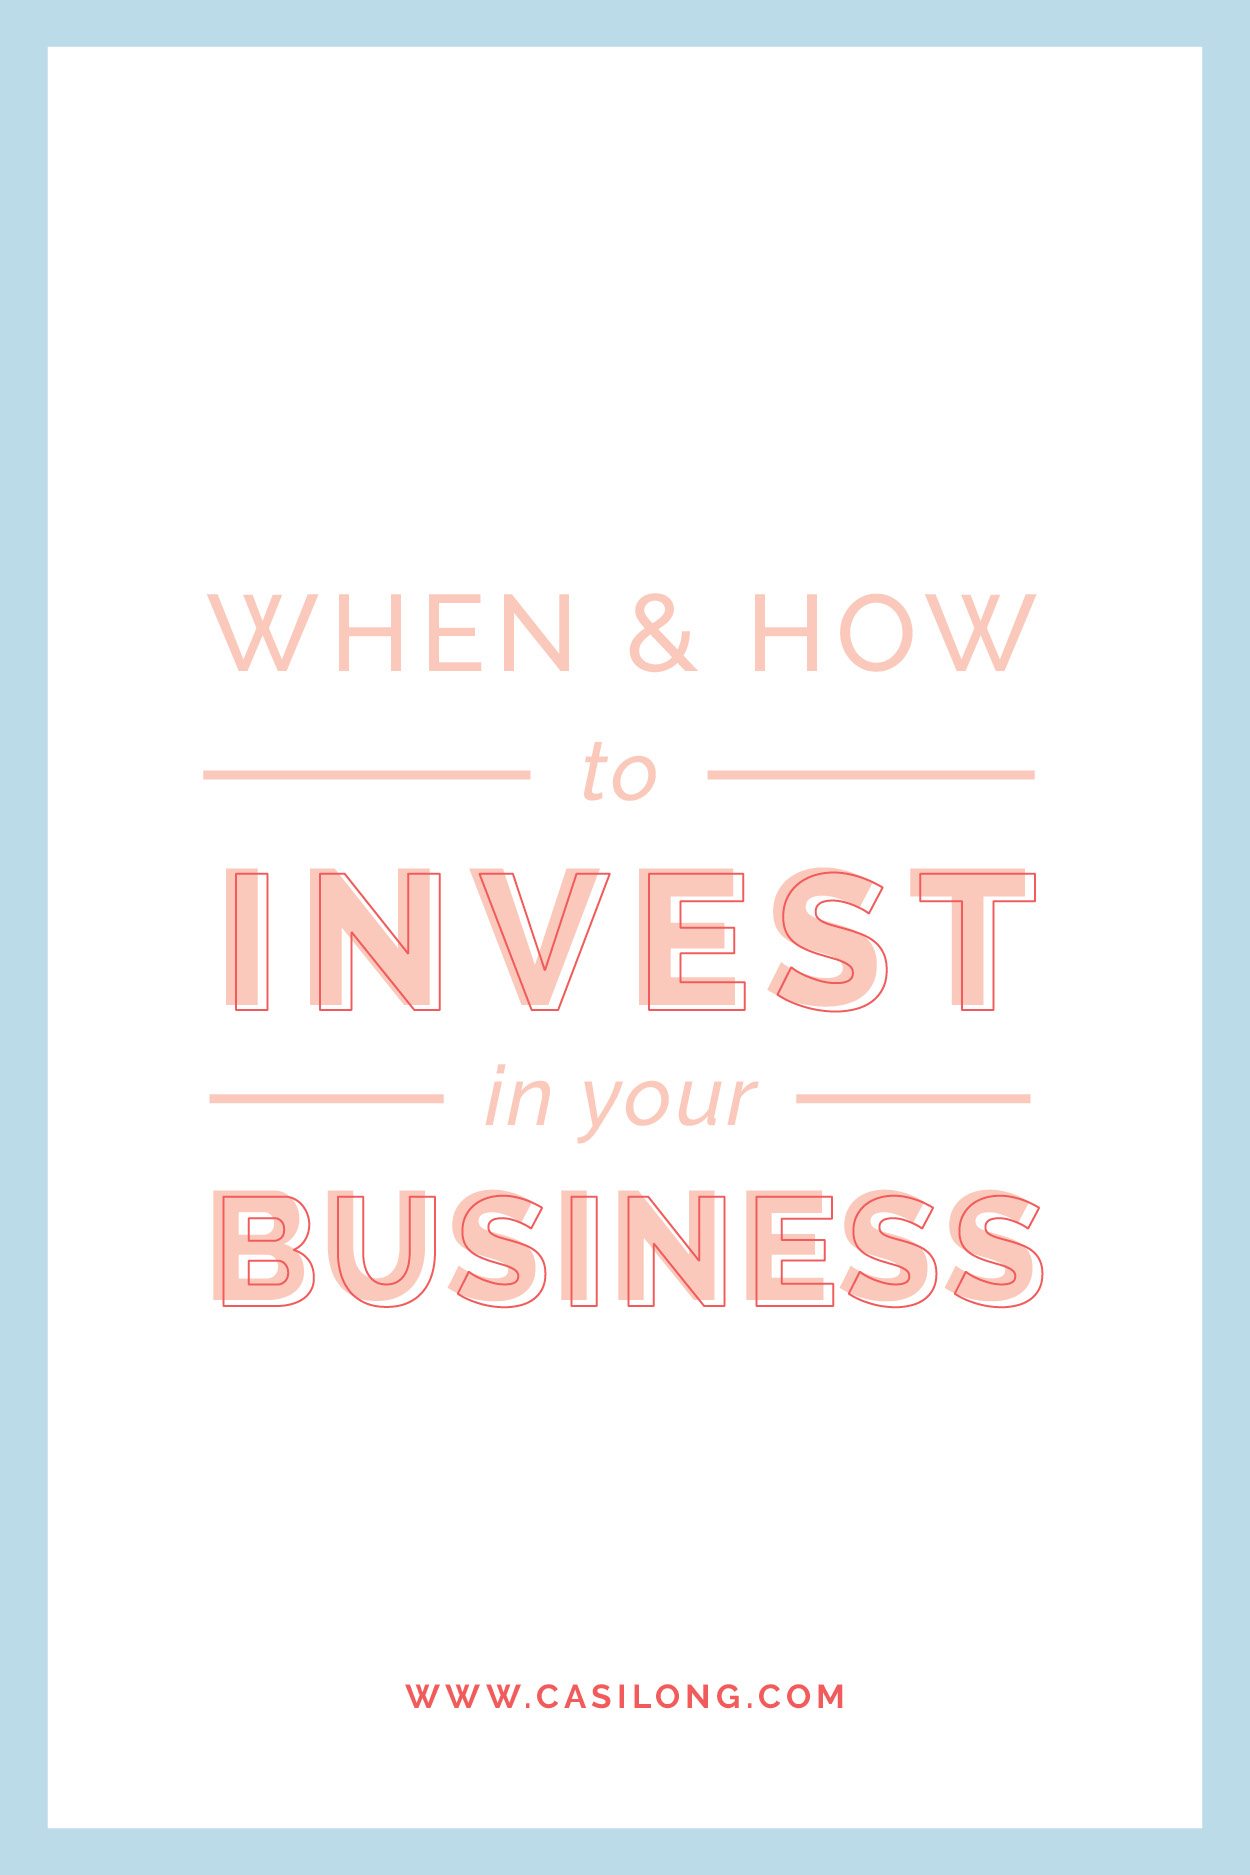 When & How to invest in your business | casilong.com/blog